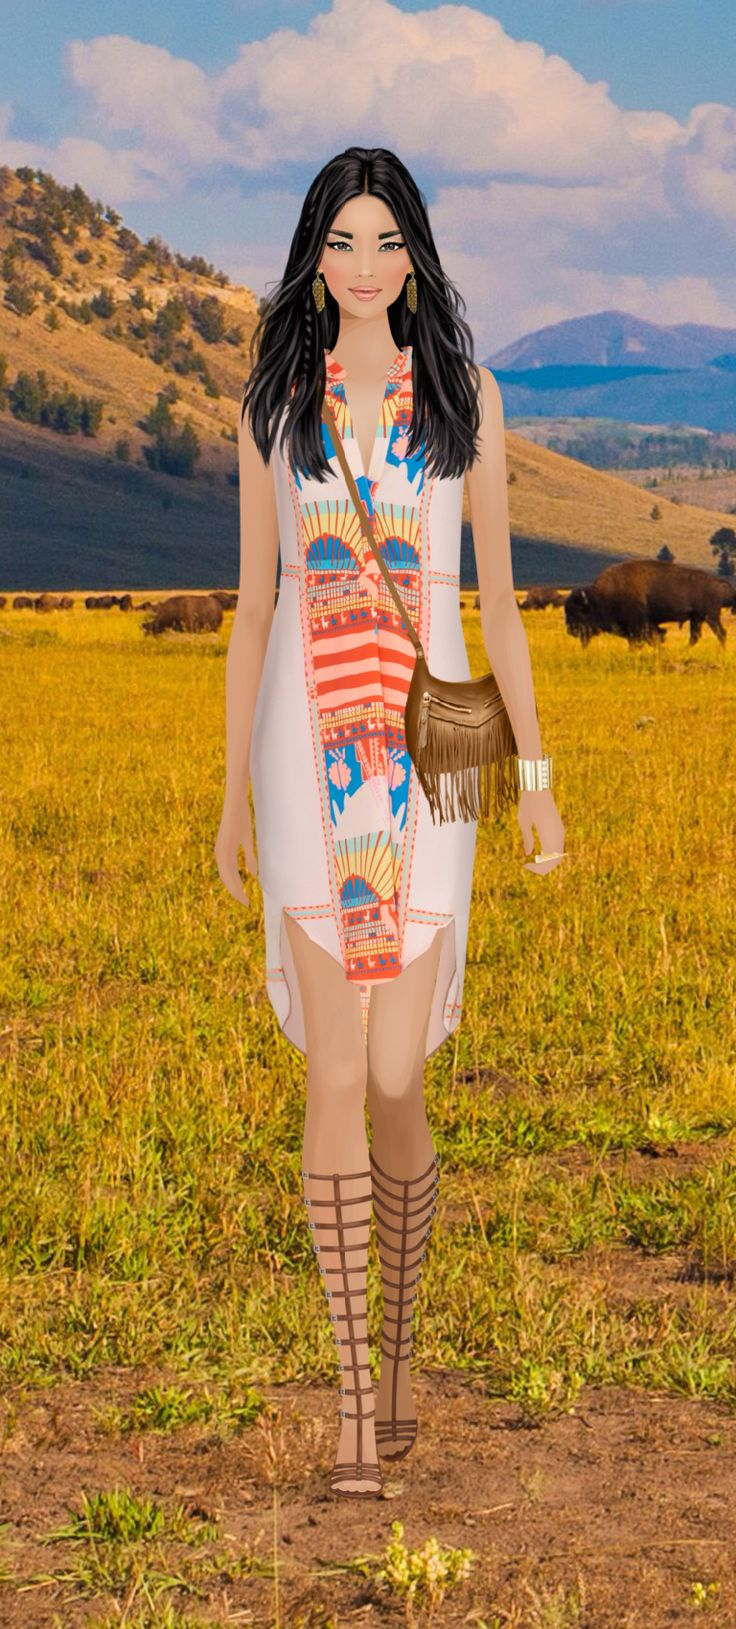 Covet Fashion Game Pocahontas My Style Pinterest